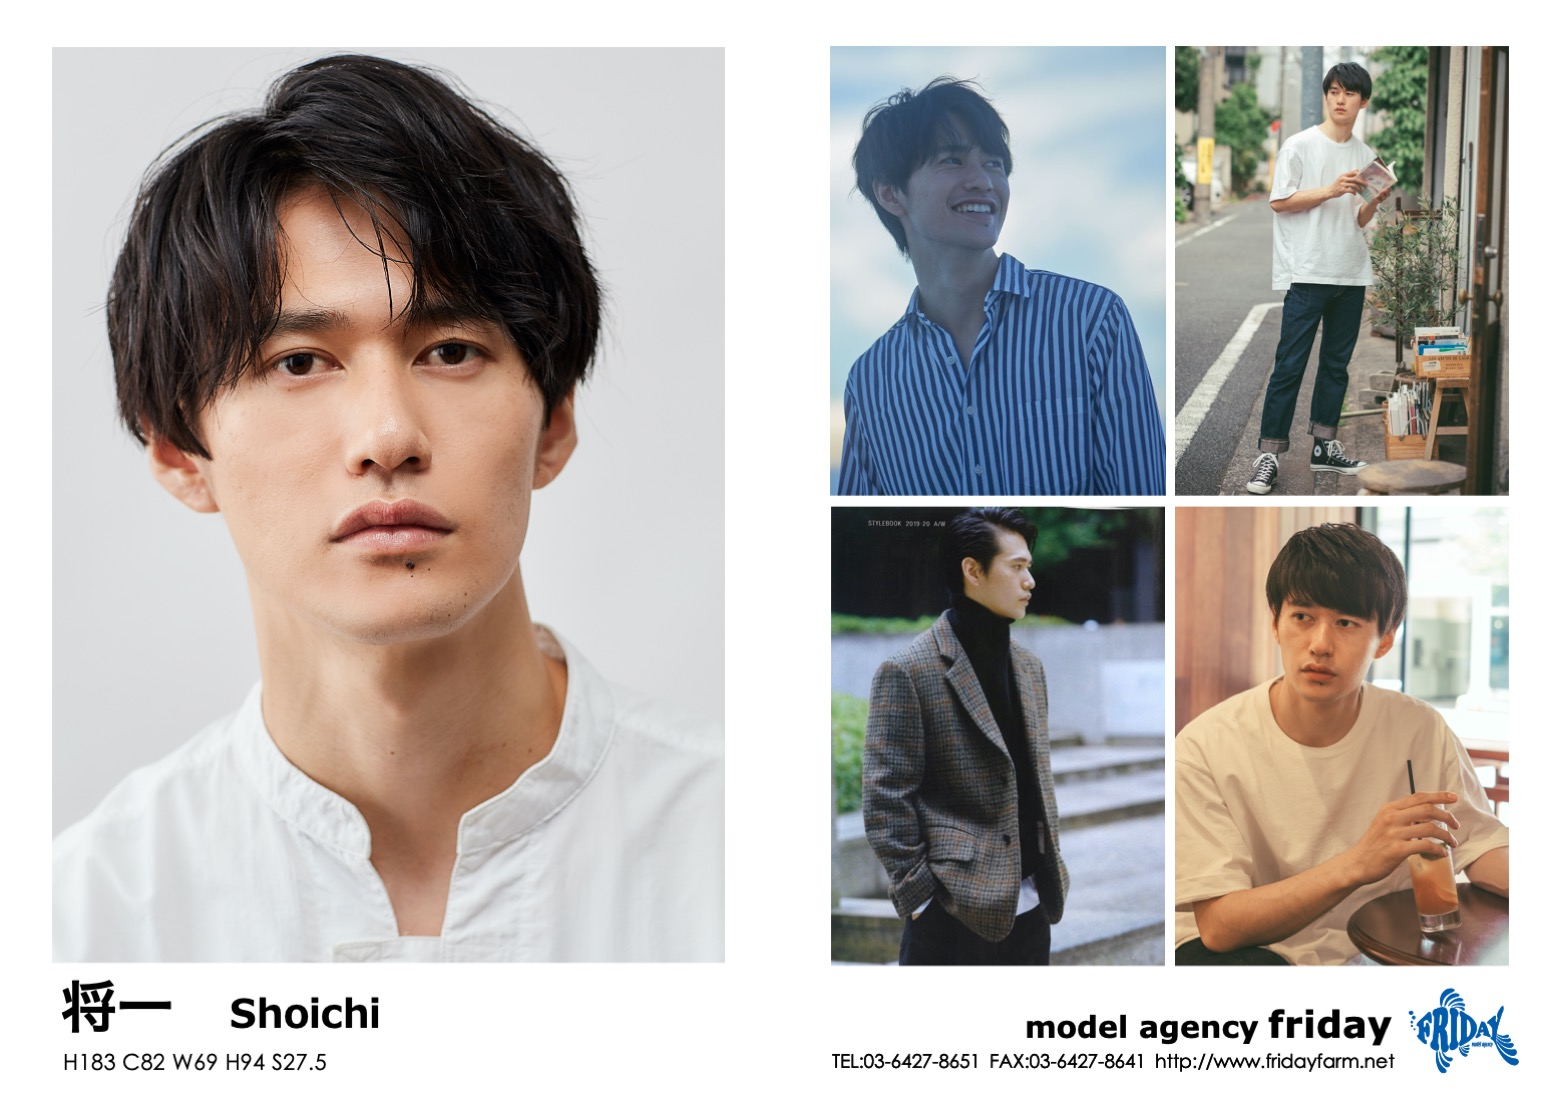 将一 - Shoichi | model agency friday